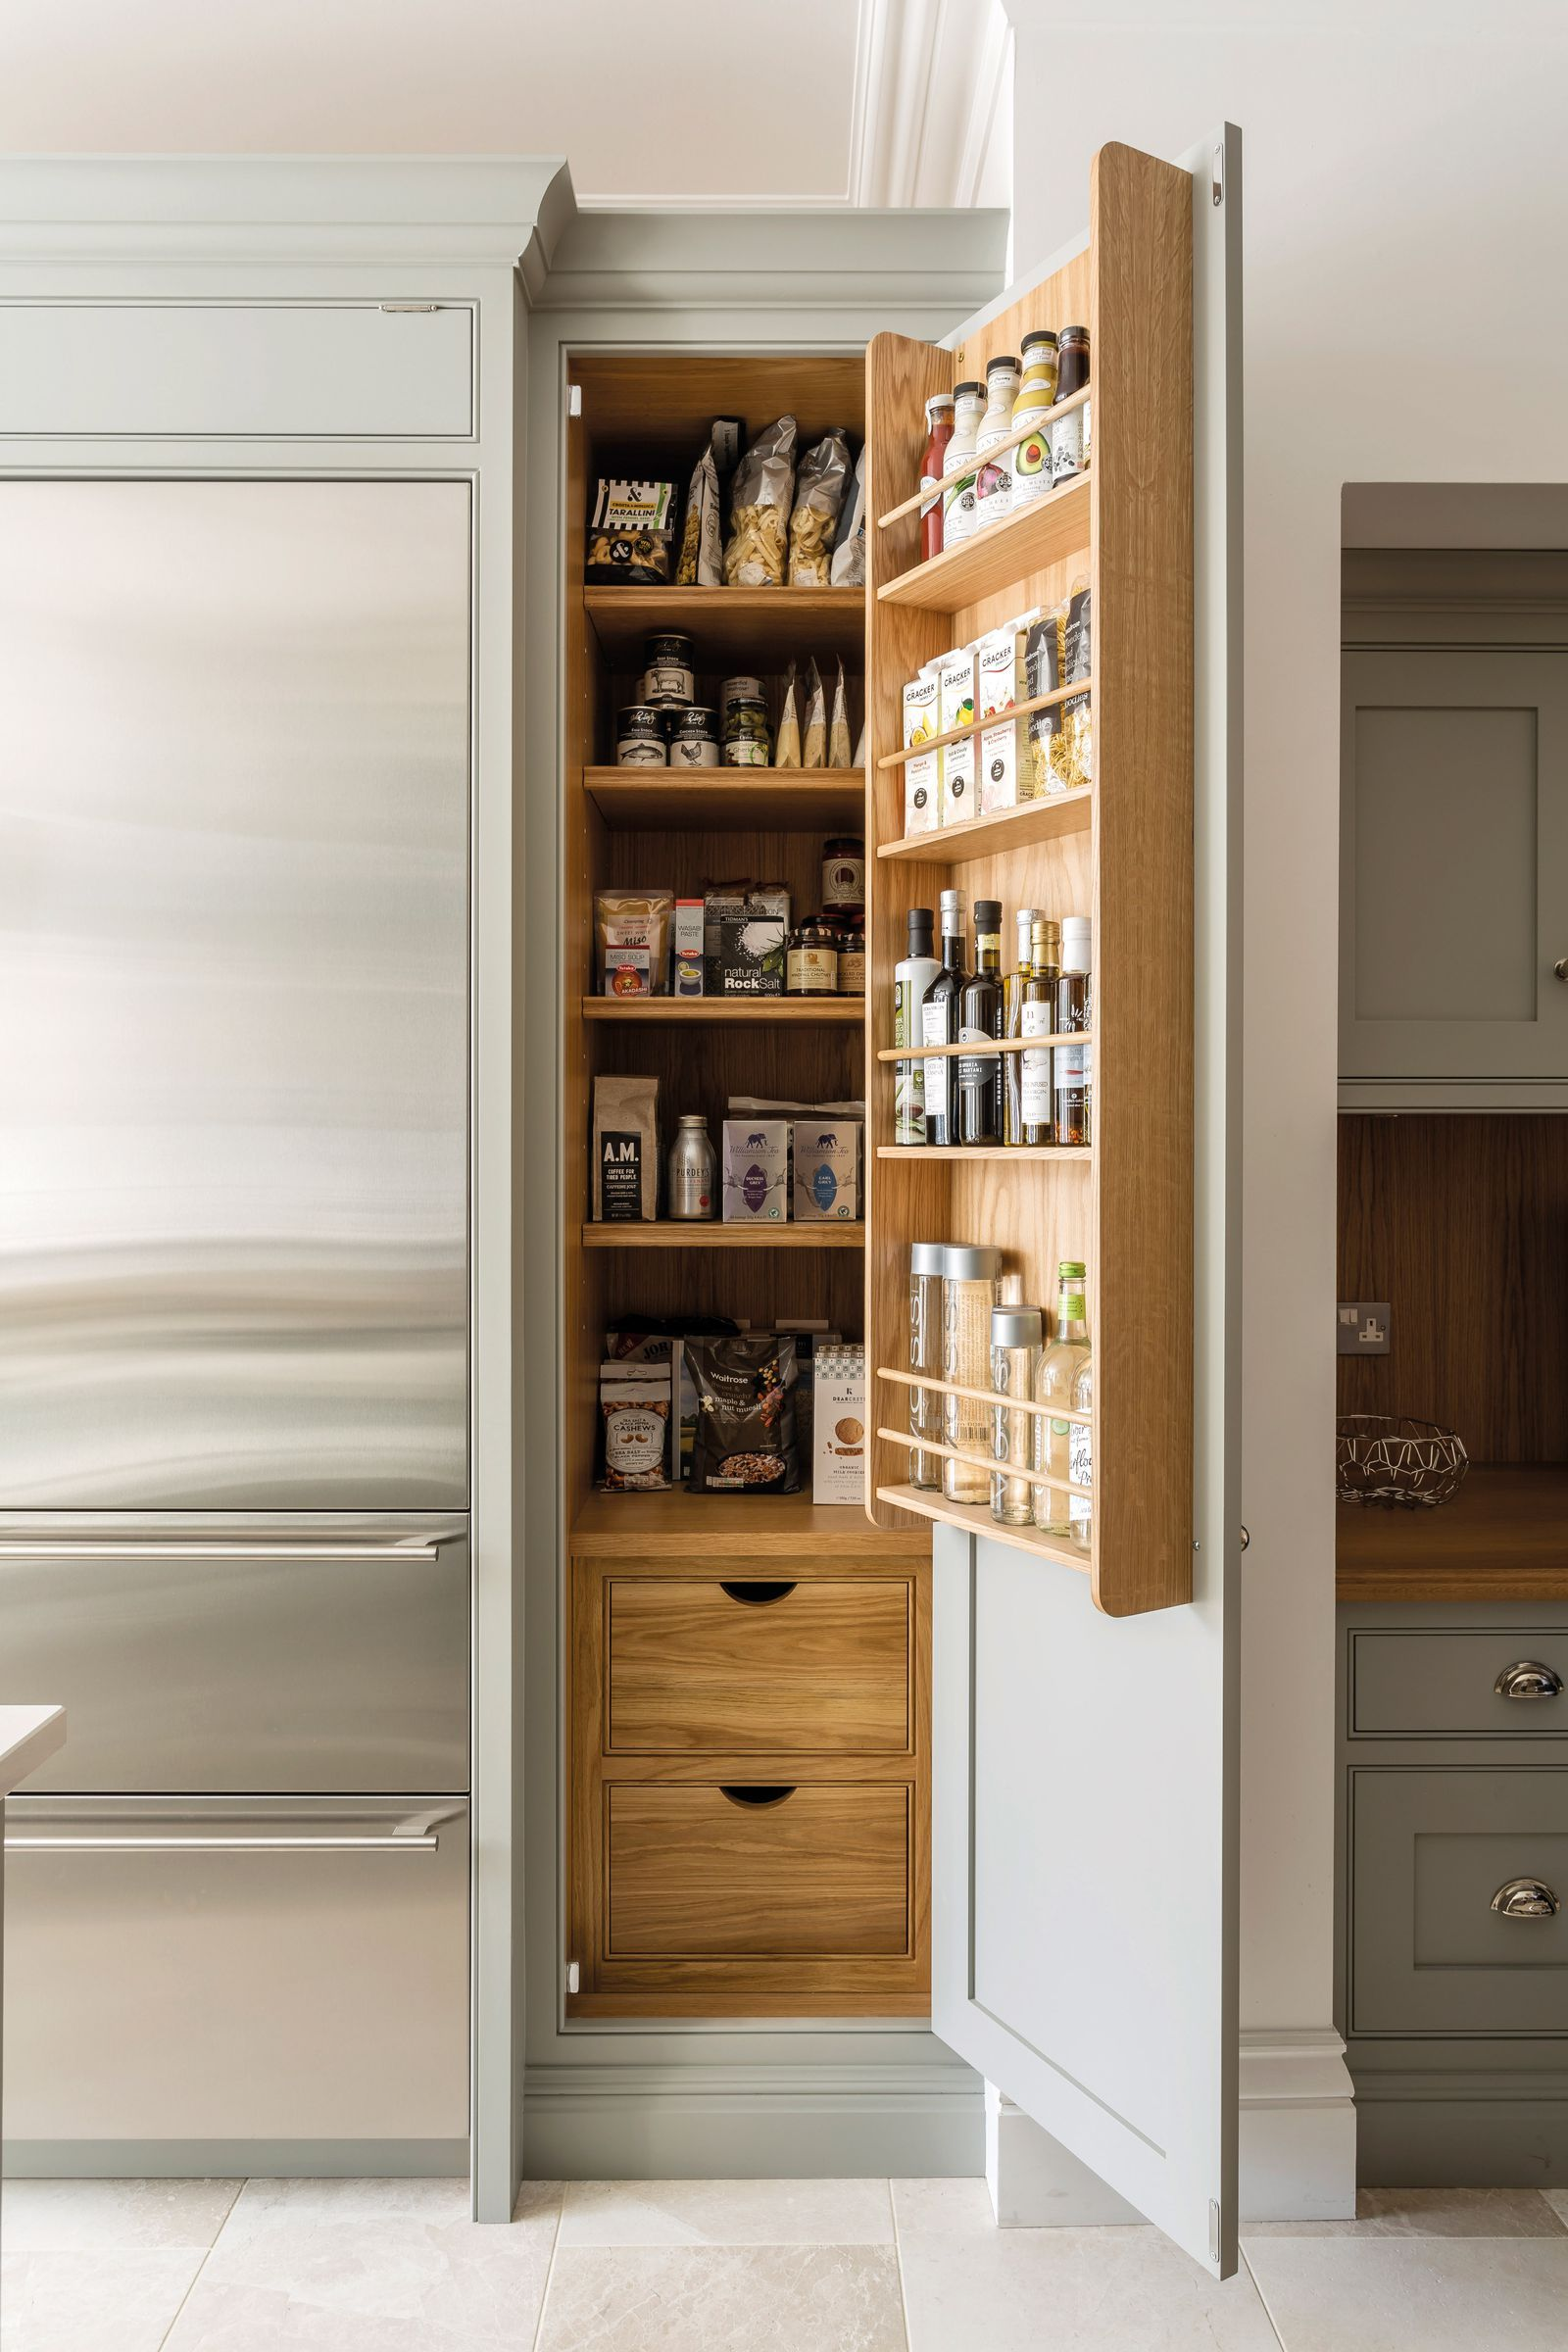 12 Stylish And Practical Pantry Ideas For Your Kitchen Narrow Pantry Kitchen Larder Cupboard Kitchen Larder